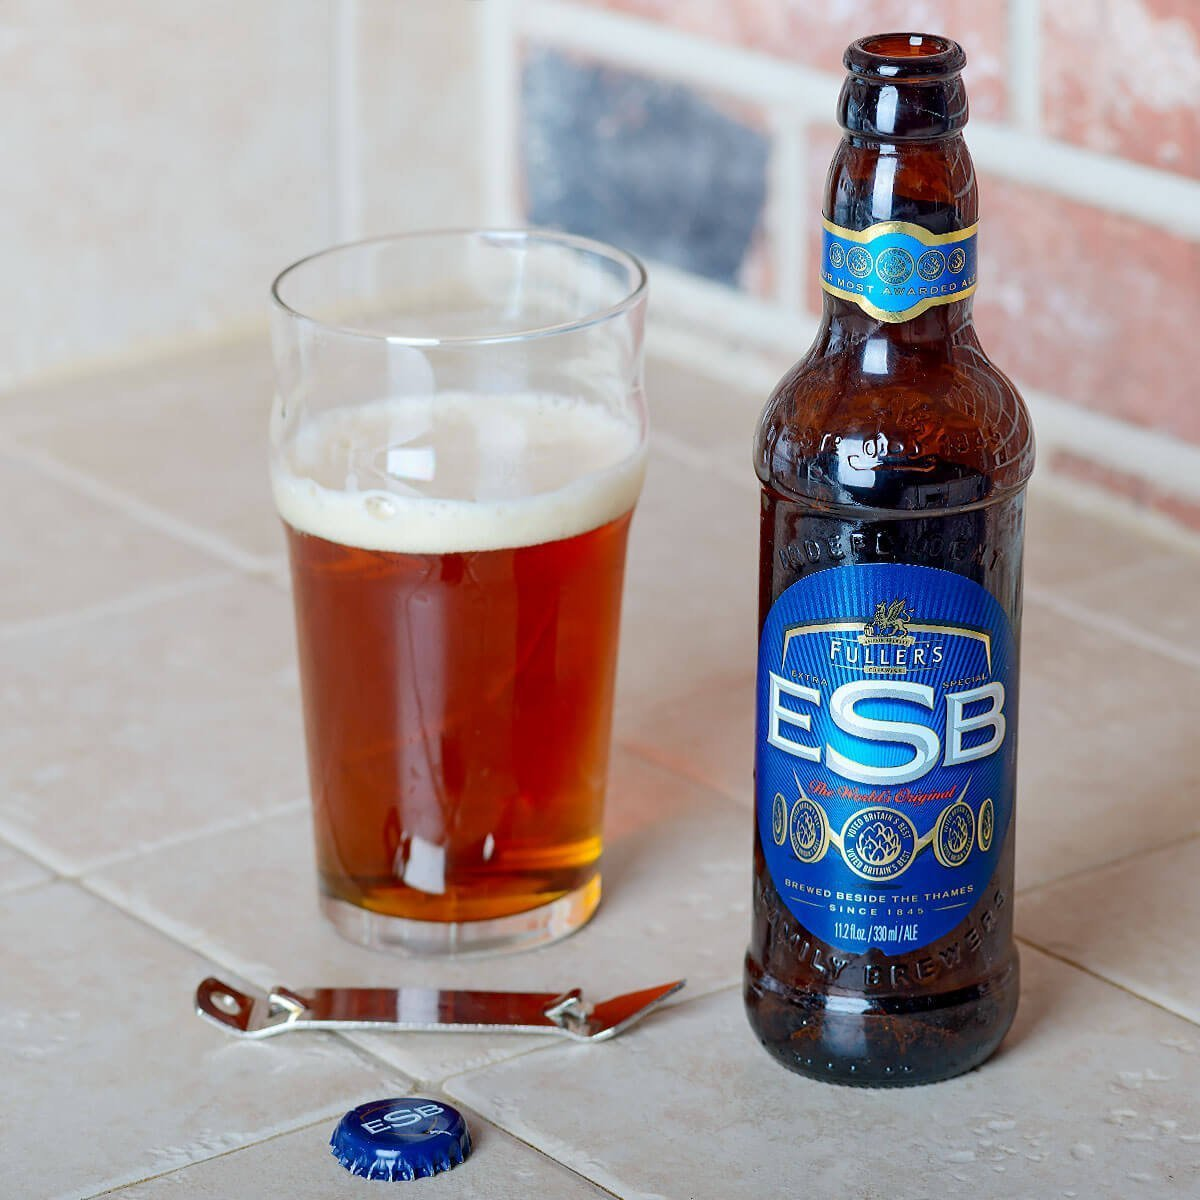 Fuller's ESB is a Strong Bitter brewed by Fuller Smith & Turner PLC that has a bite of floral and earthy hops, fruit, booze, toast, and chocolate.